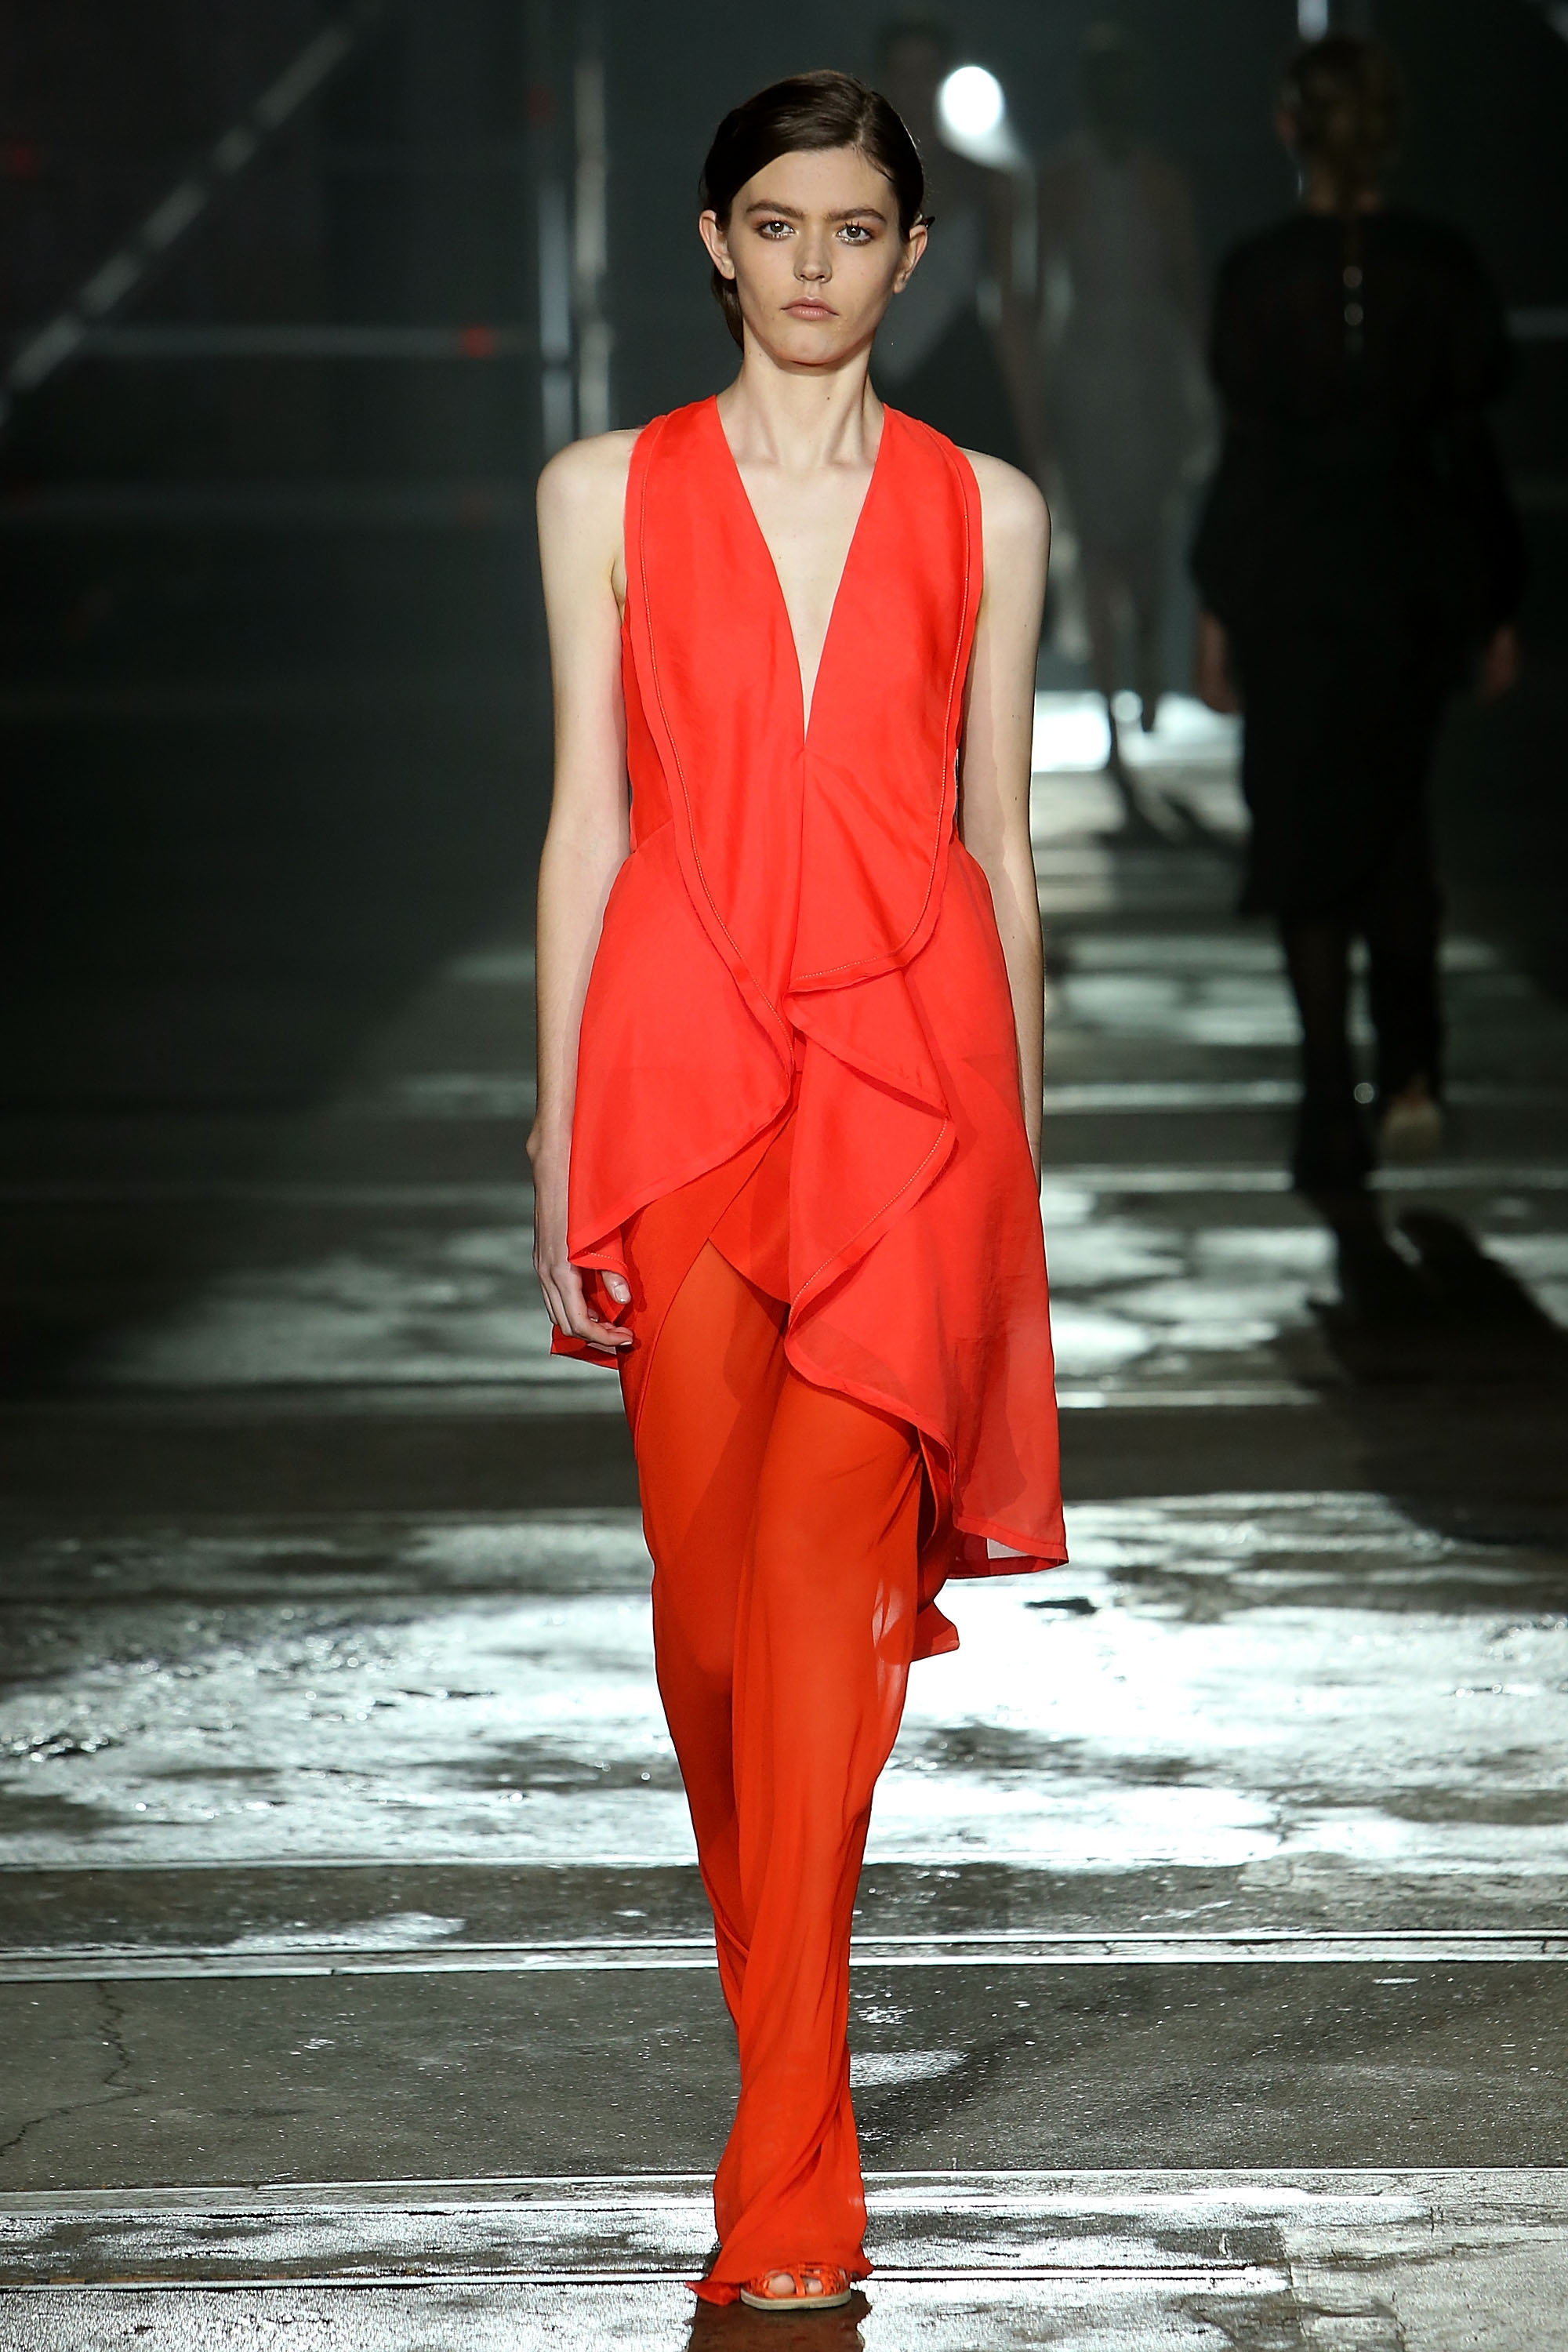 <p>Kit Willow is officially the comeback kid of Mercedes-Benz Fashion Week Australia with her KitX show triumphantly closing Day four of the event.</p> <p>After the much publicised loss of her label Willow following a business deal where there were few winners, Kit has returned with an ethical focus that has honed and elevated her creativity.</p> <p>Willow was a label playing successfully in the same ballpark as sass & bide and street wear brands but KitX takes dressing to the next level.</p> <p>Jackets with sliced and knotted sleeves, deconstructed trench coats and Ikat print jumpsuits manage to combine a focus on sustainability with current trends.</p> <p>It's no wonder that the thinking women of Hollywood, such as Emma Watson, have already embraced the label and Australia's intelligent dressers are sure to follow.</p> <p>Kit lives and breathes what she is selling (unlike some designers who turn up their noses at wearing their own label) as it the best advertisement for the KitX woman. To prove her point she styled the incredible show herself.</p> <p>Kit Willow is not only back where she belongs, she's moved to a nicer postcode.</p>